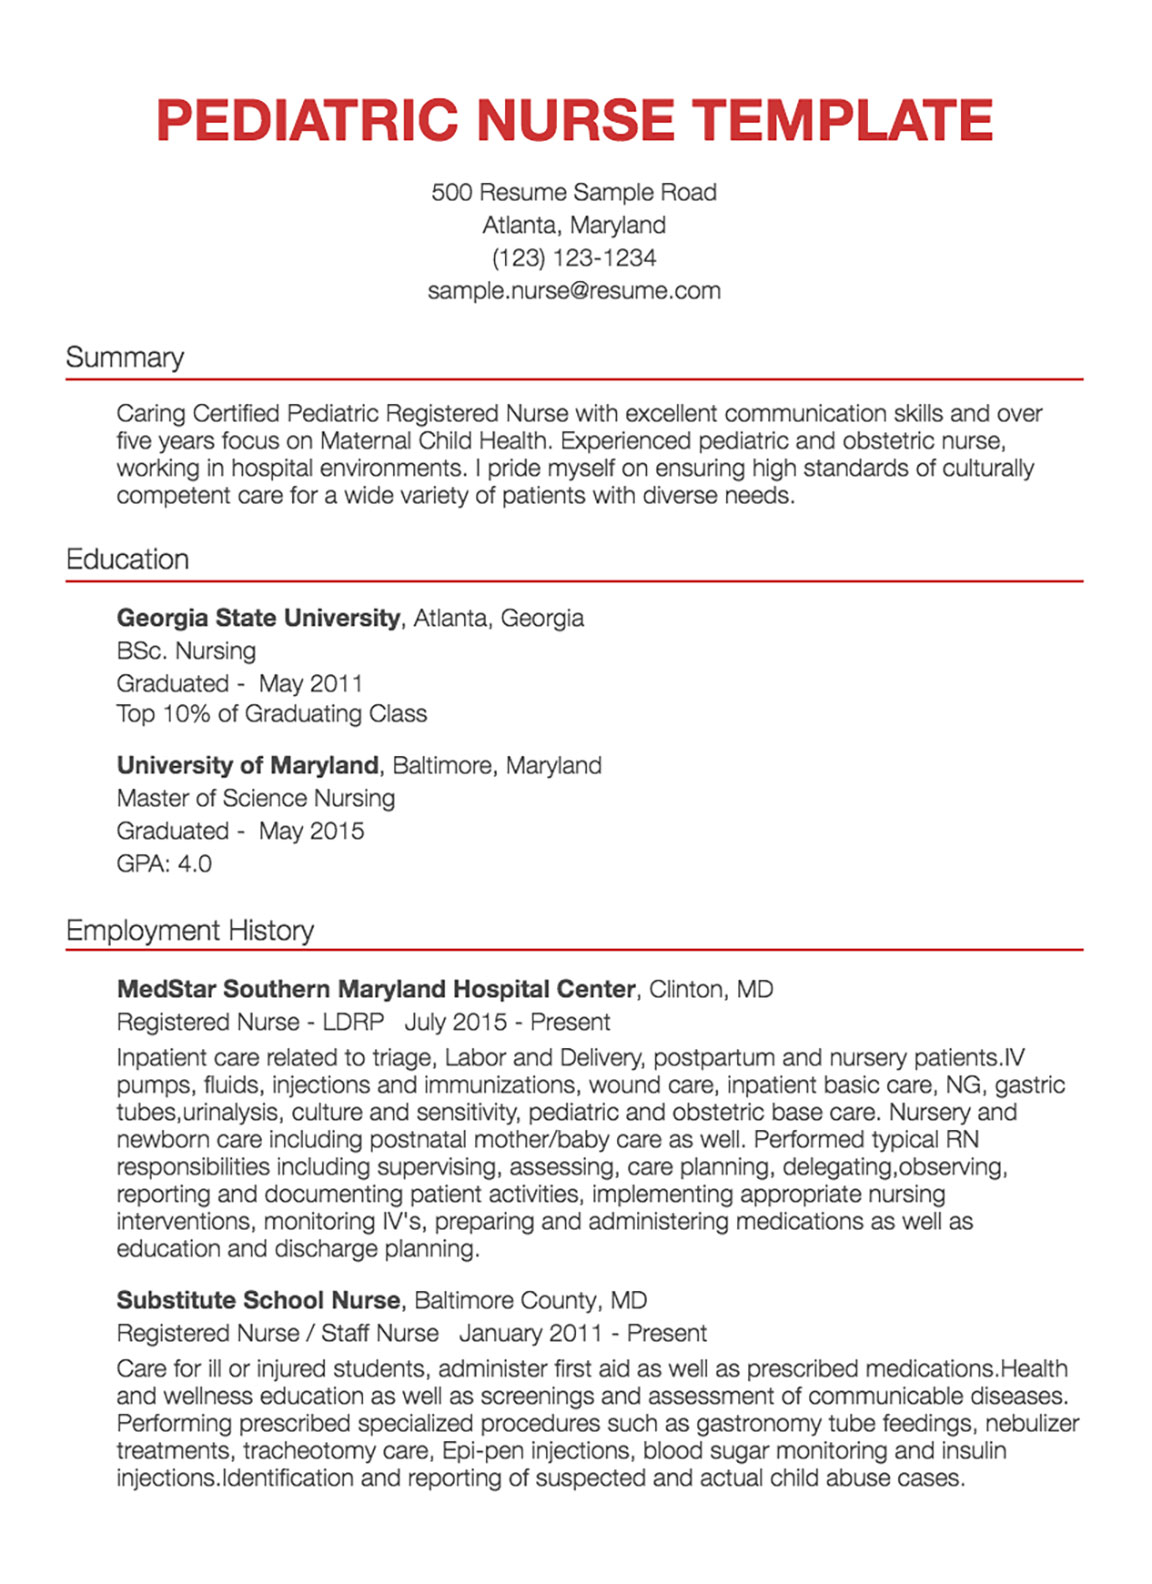 Nursing Resumes Samples 30 Nursing Resume Examples Samples Written By Rn Managers